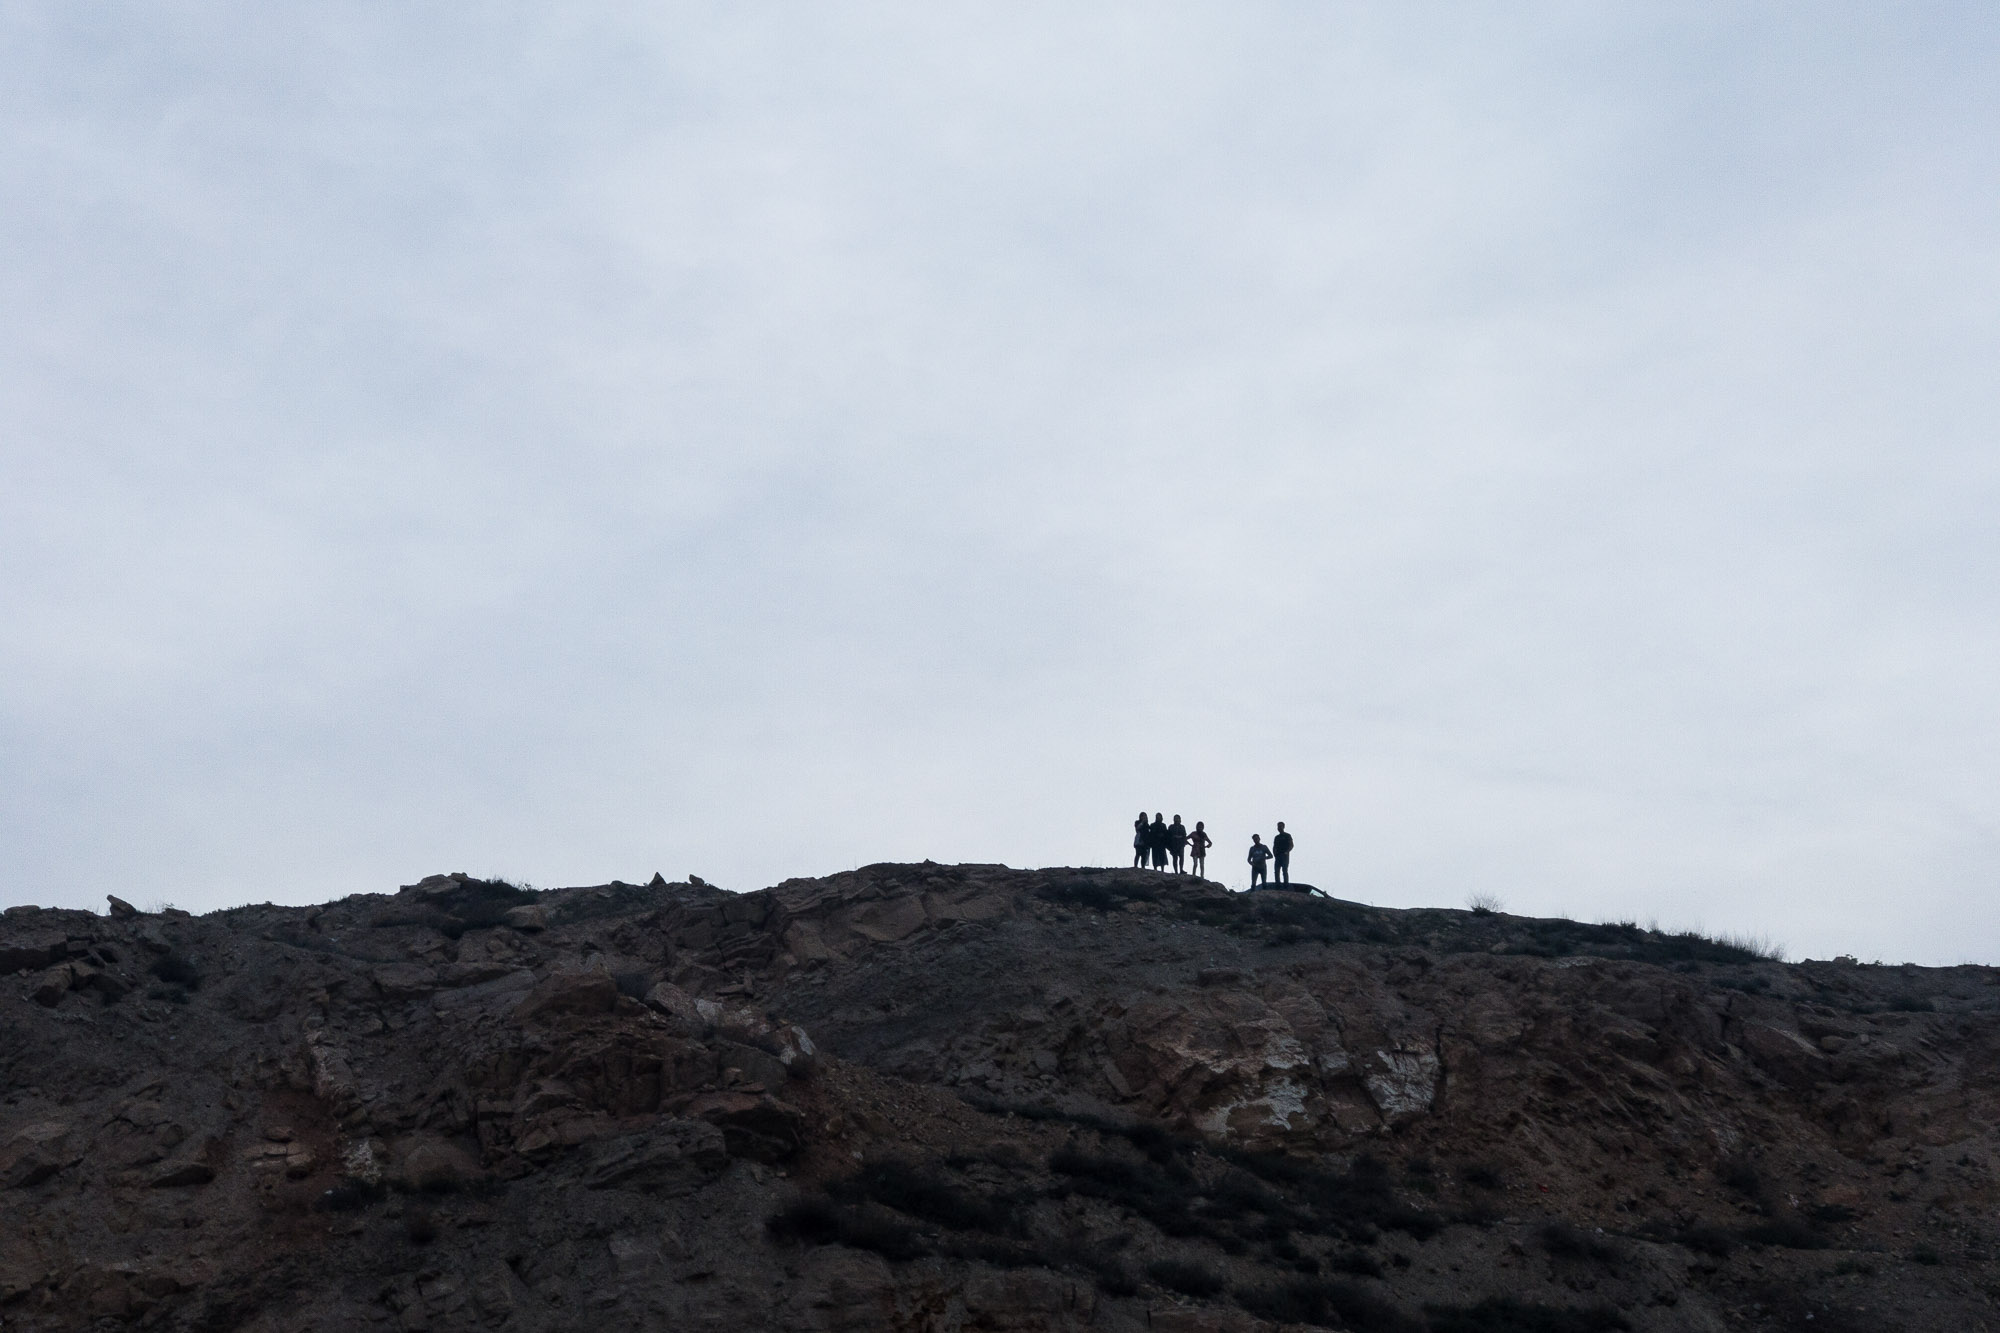 people on a hill